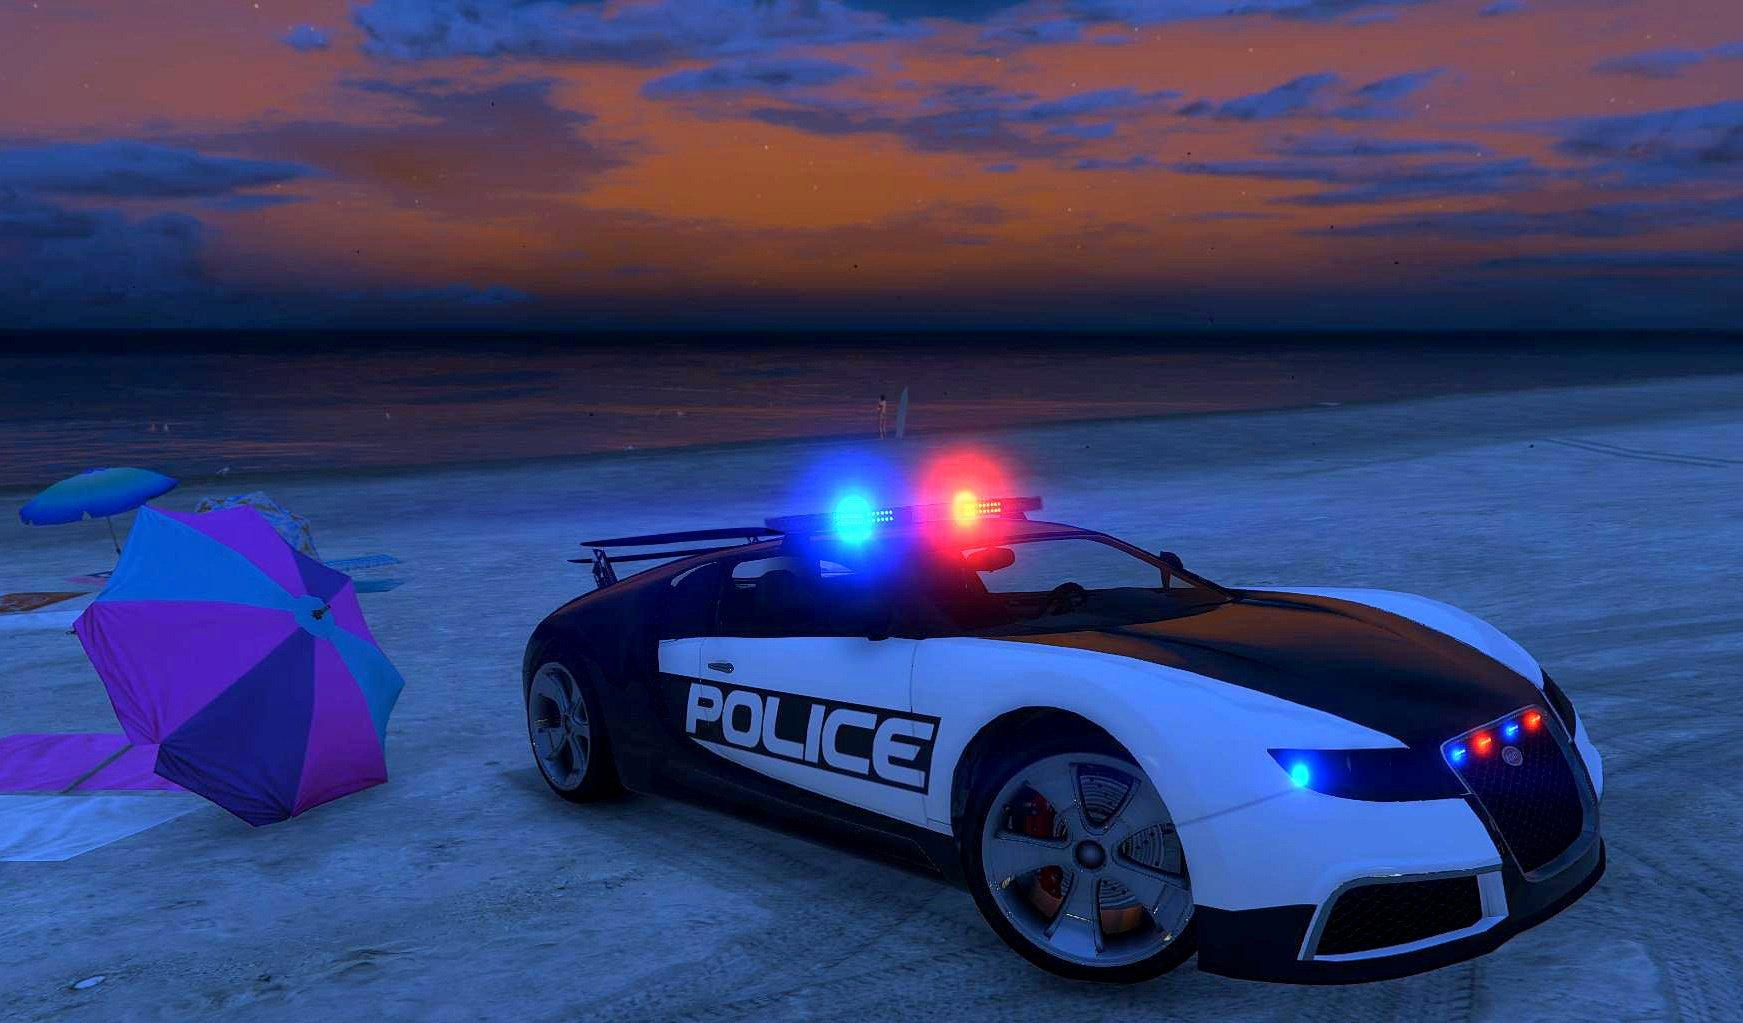 bugatti adder police lspd gta5. Black Bedroom Furniture Sets. Home Design Ideas